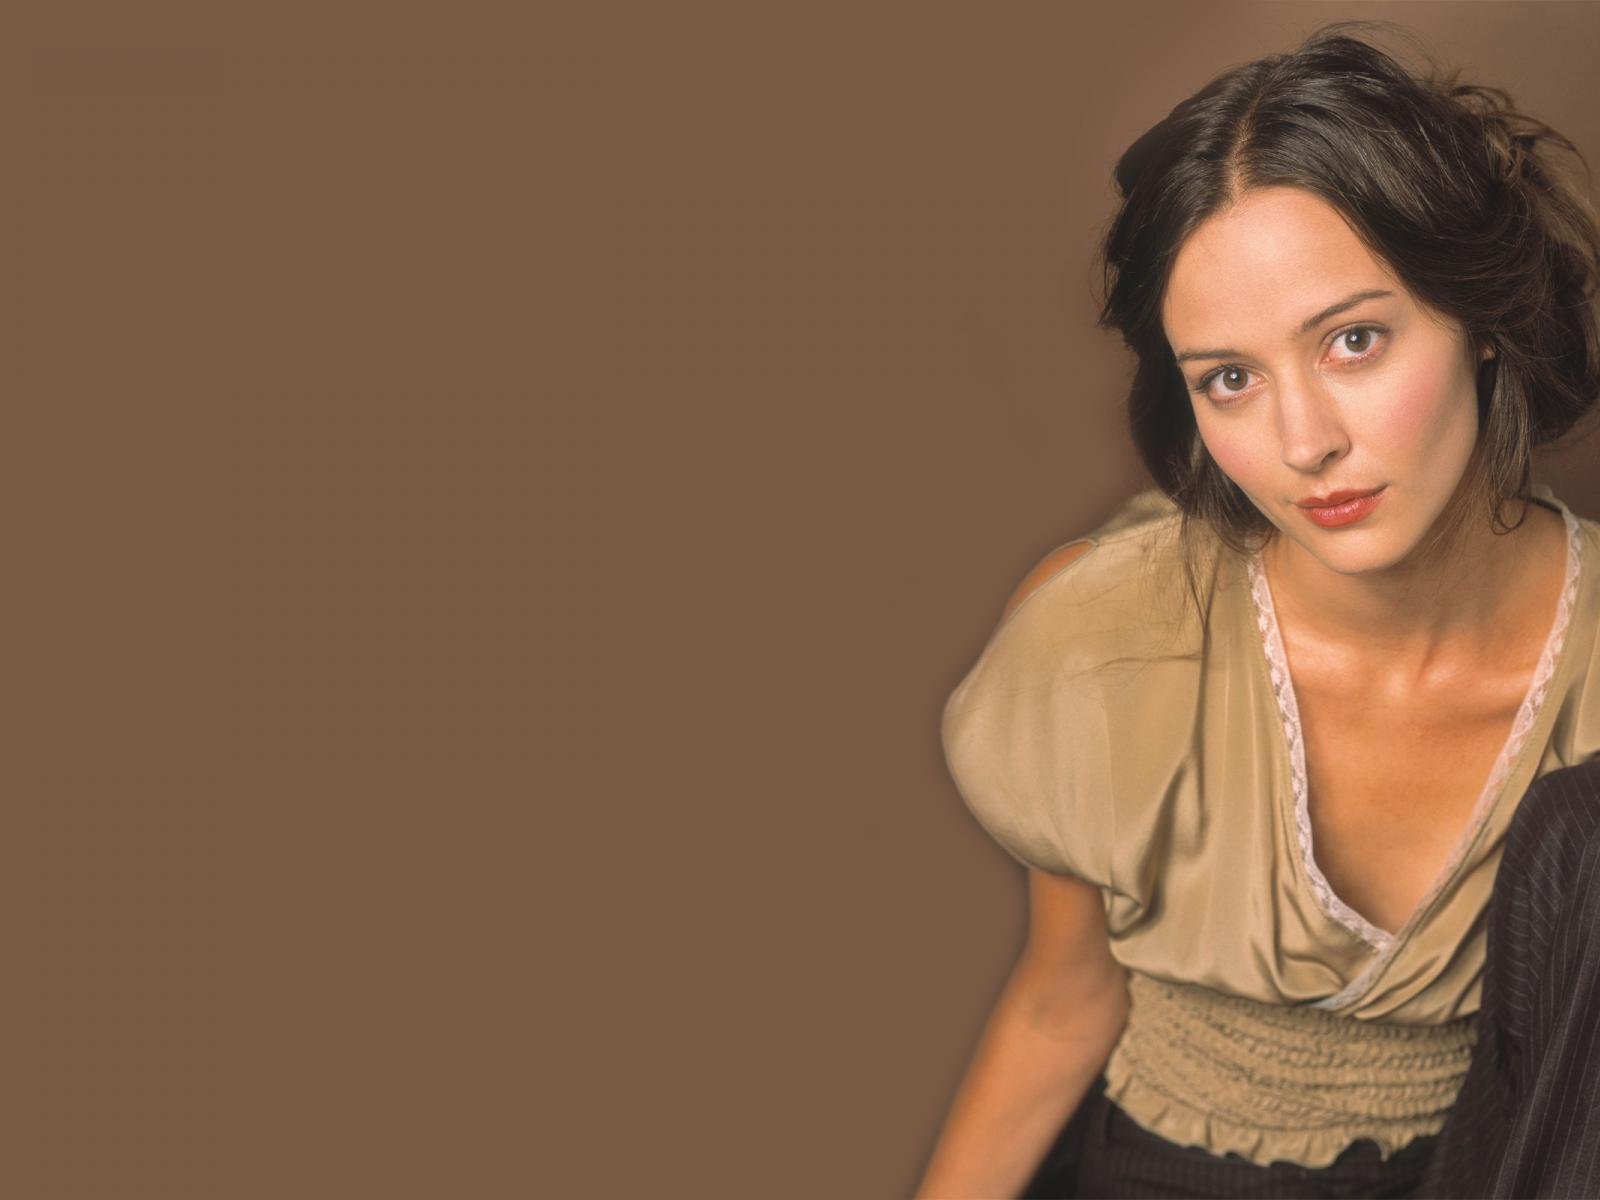 1600x1200 - Amy Acker Wallpapers 28